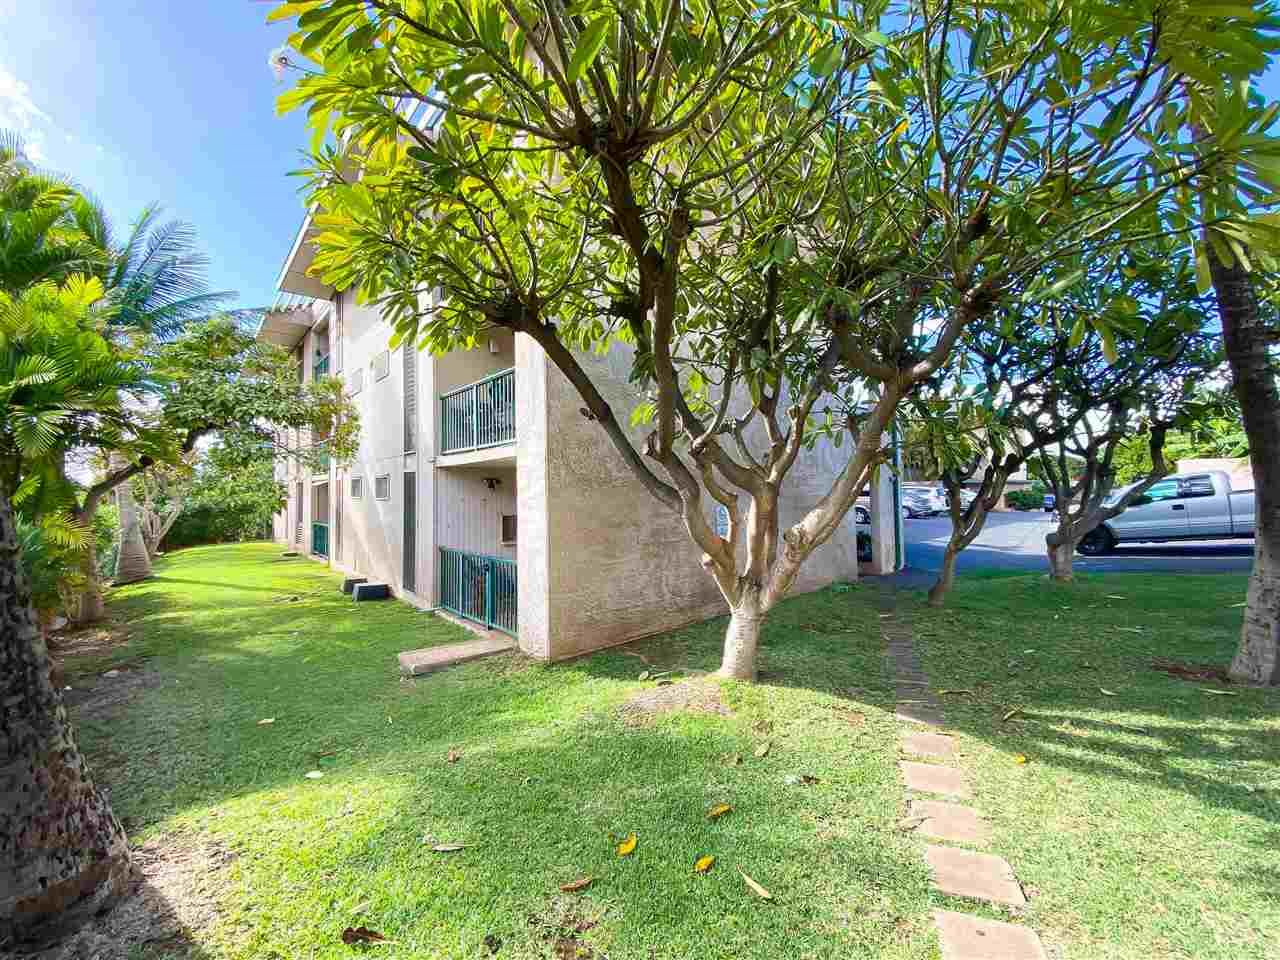 Photo of 35 Walaka St #P101, Kihei, HI 96753 (MLS # 390561)